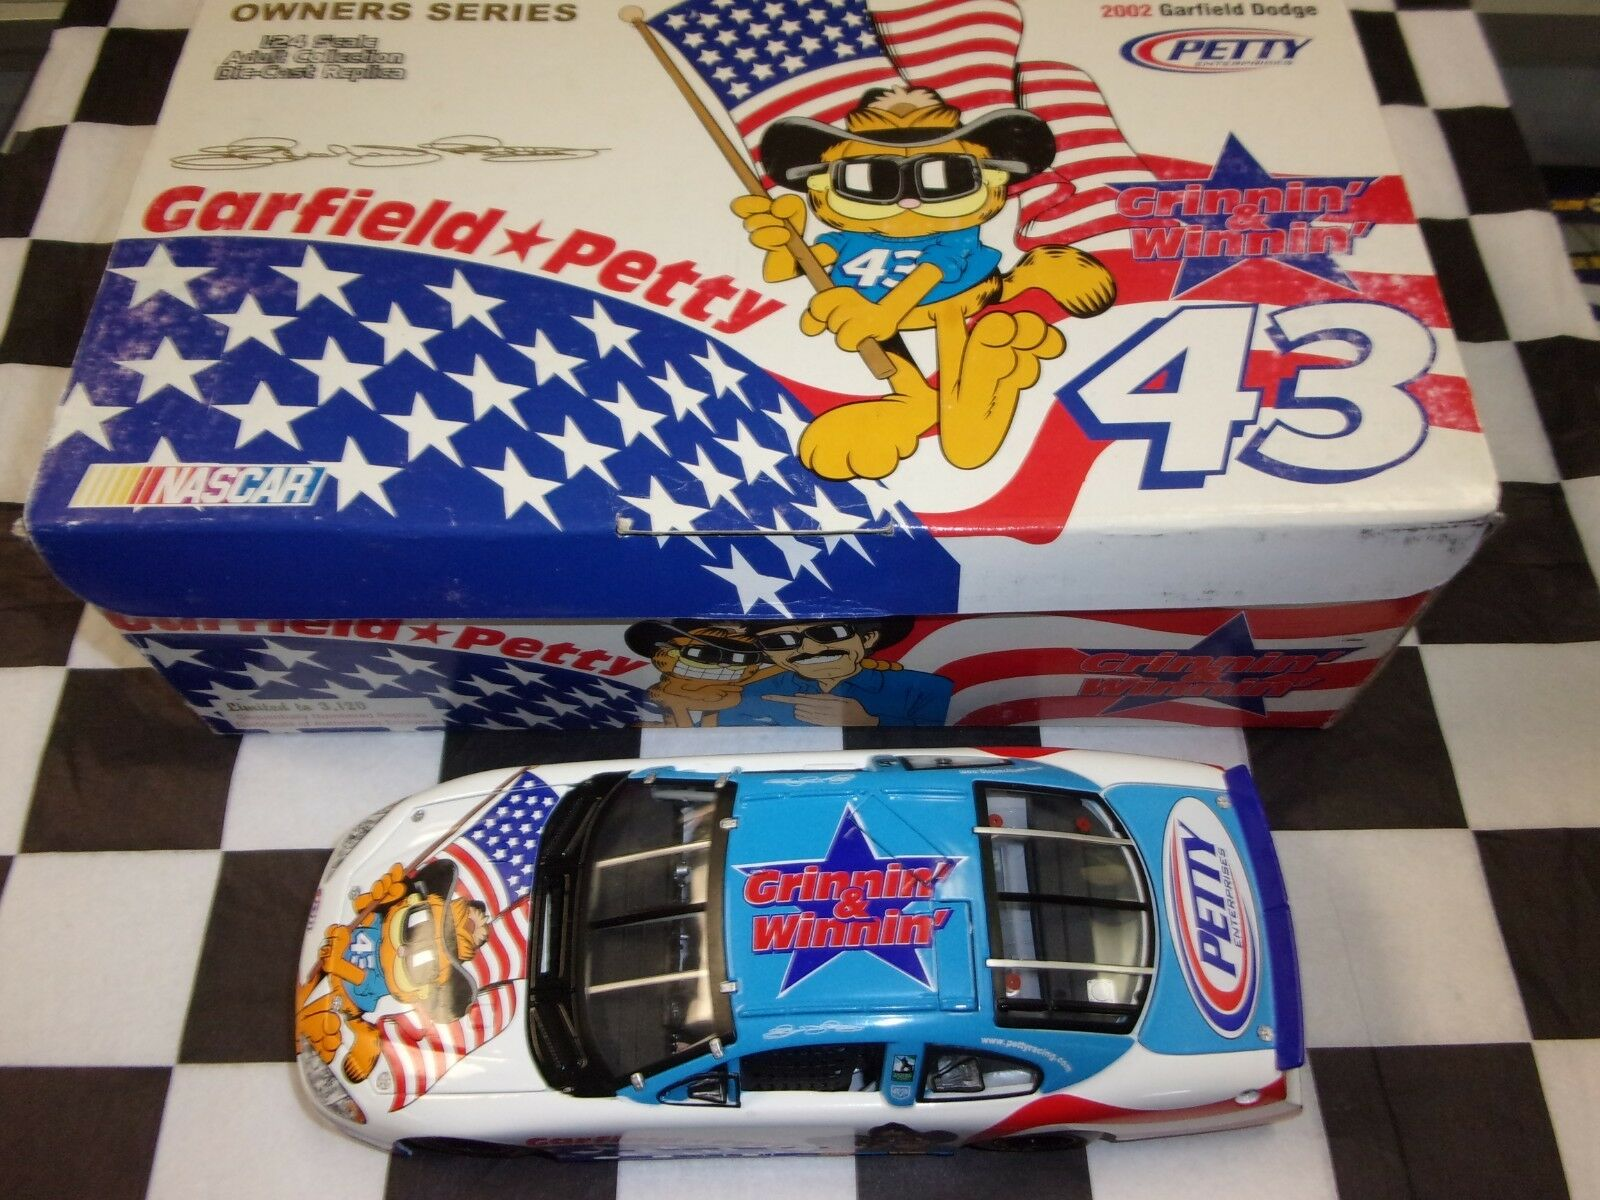 Richard Petty  43 Garfield Owners Series 2002 Dodge 1:24 Team Caliber NIB NASCAR